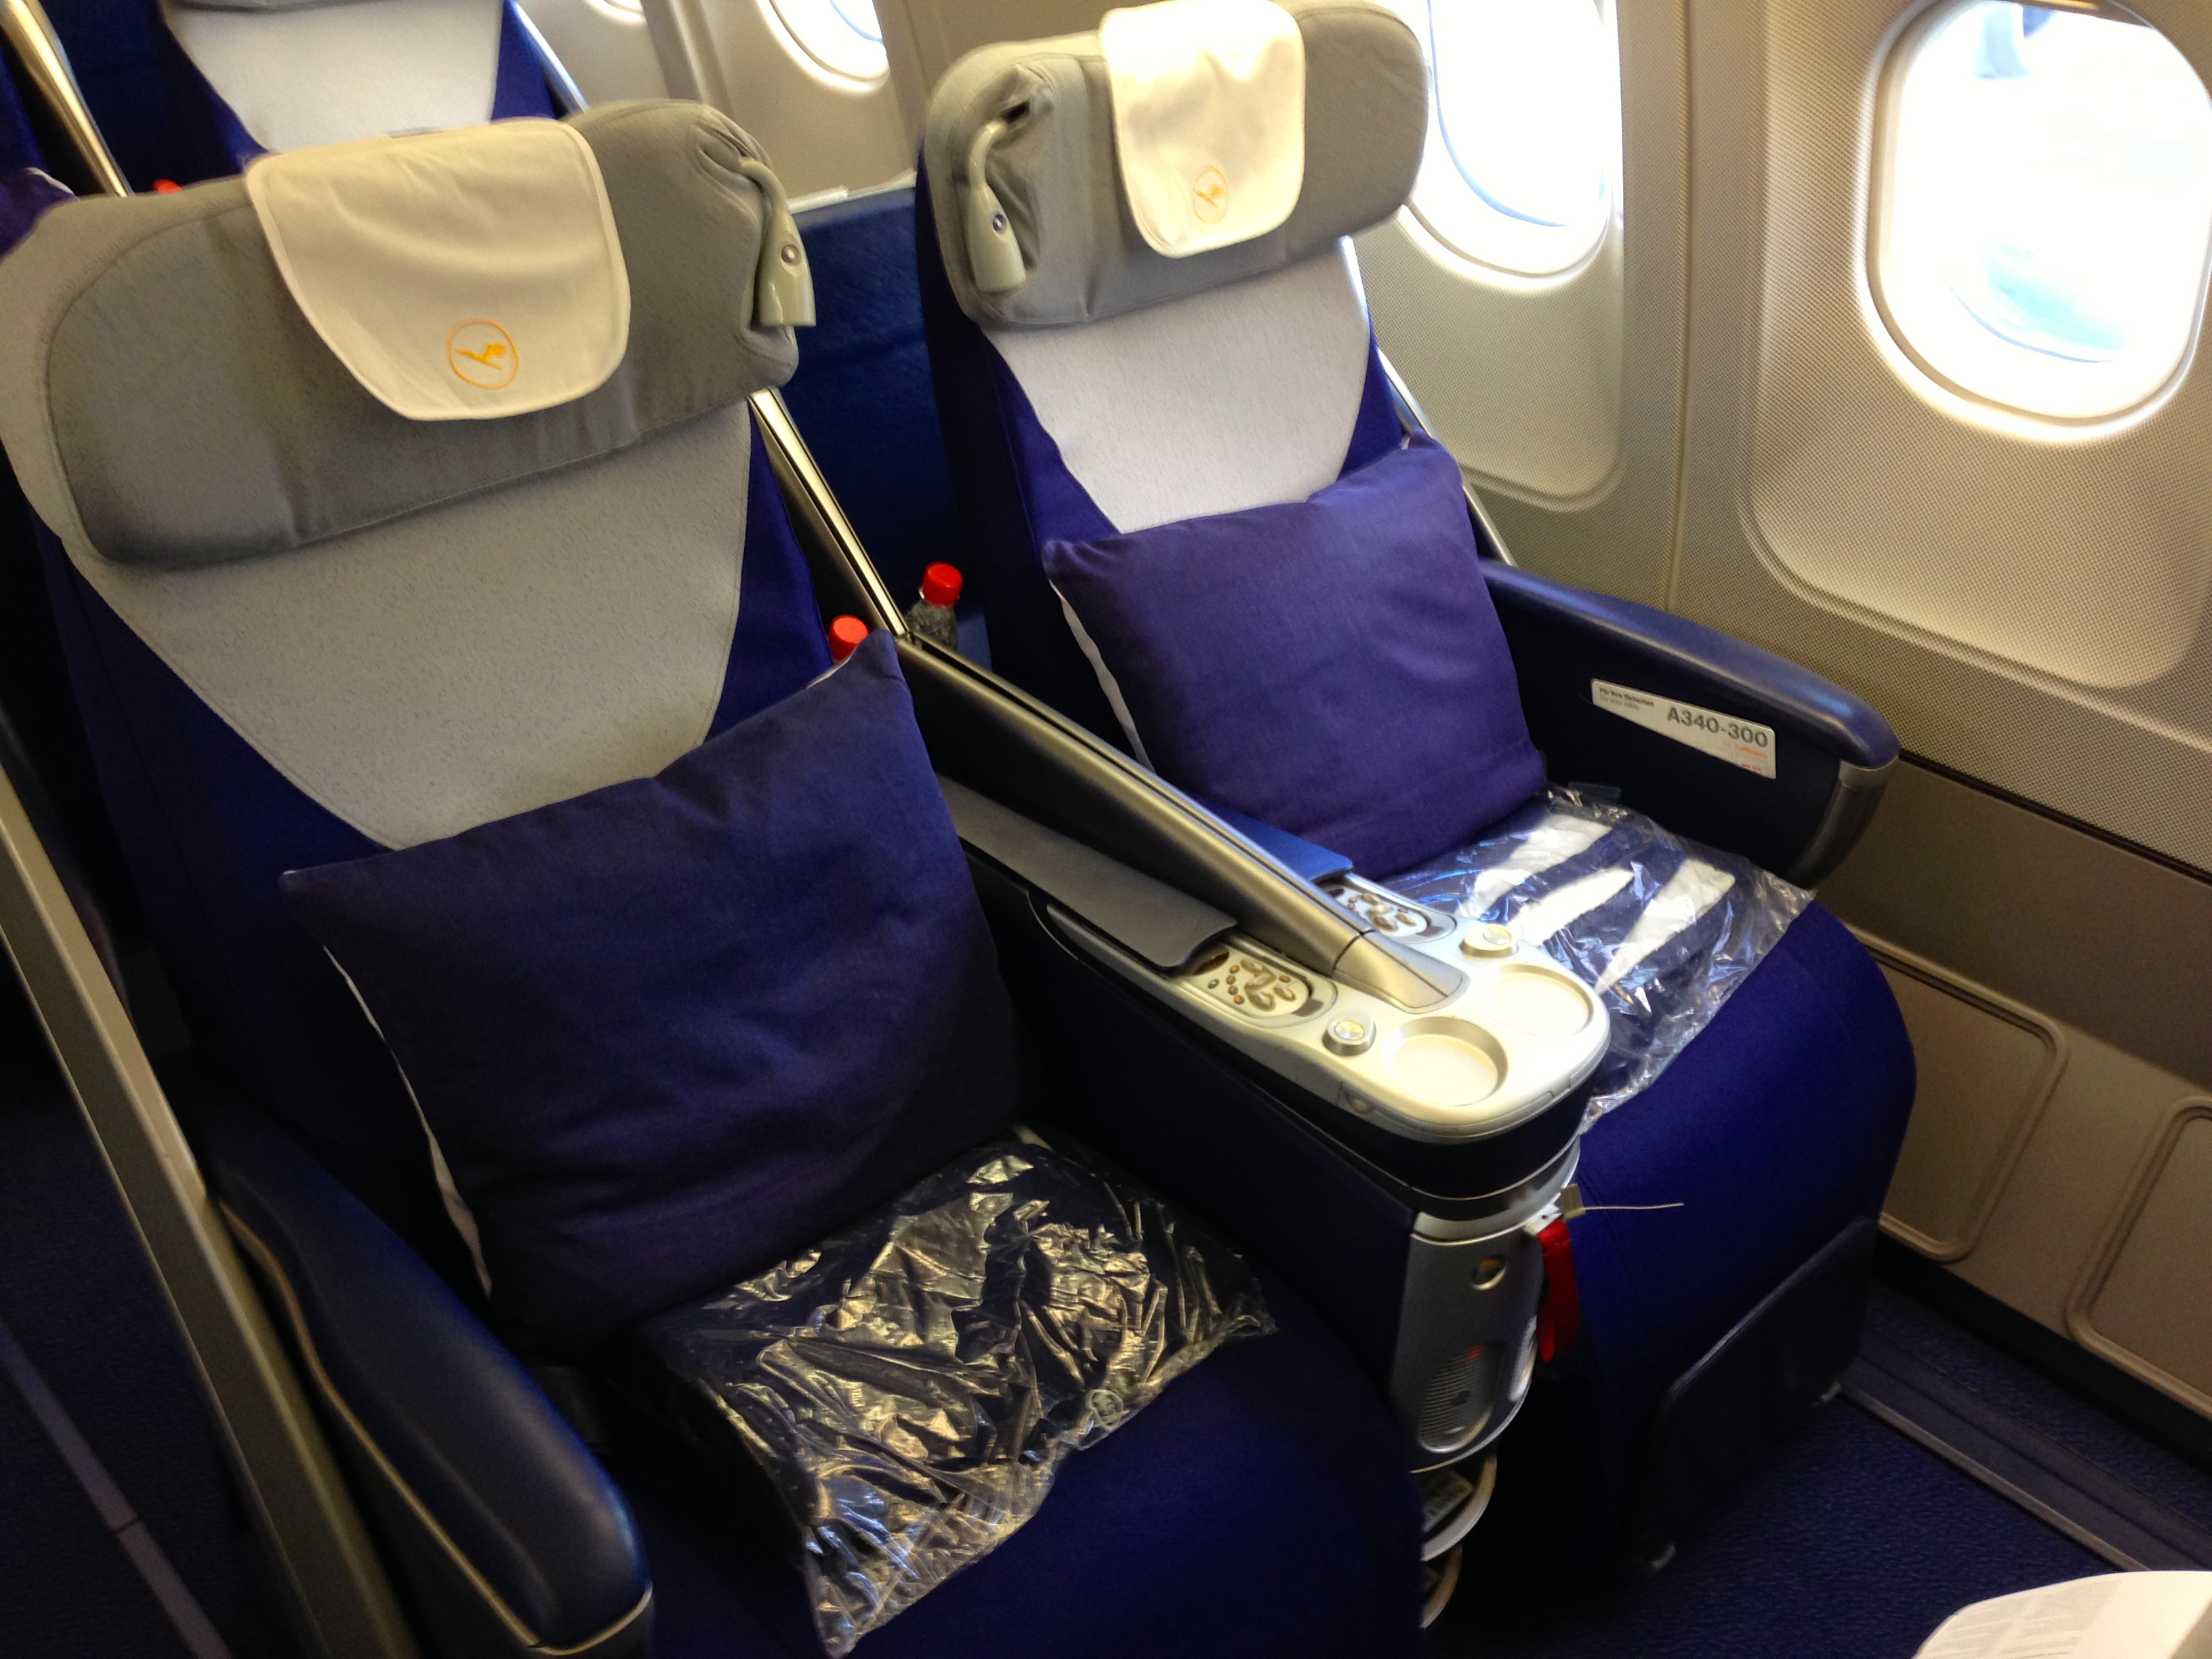 Lufthansa A340-300 Business Class Seat Munich to Chicago